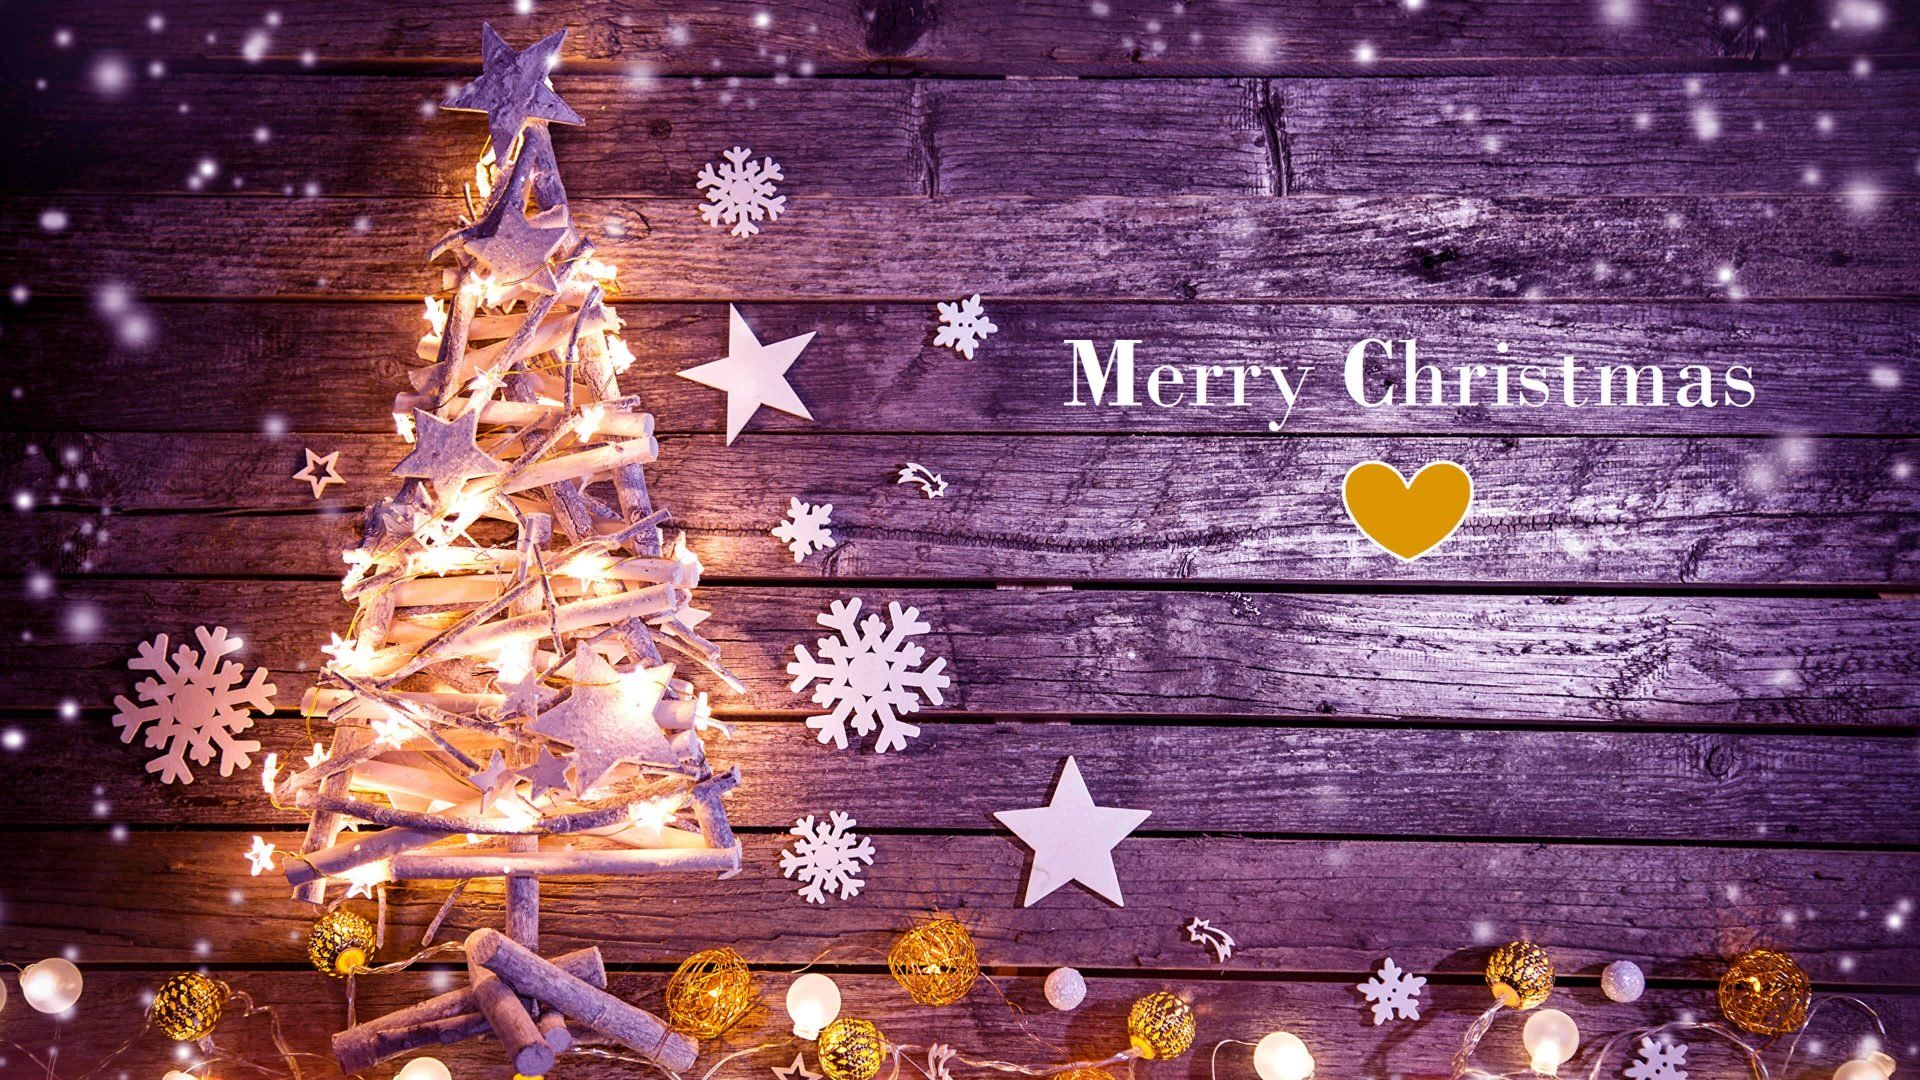 62 Best Christmas Wallpapers To Share 2019 Templatefor Merry Christmas Wallpaper Merry Christmas Images Merry Christmas Background